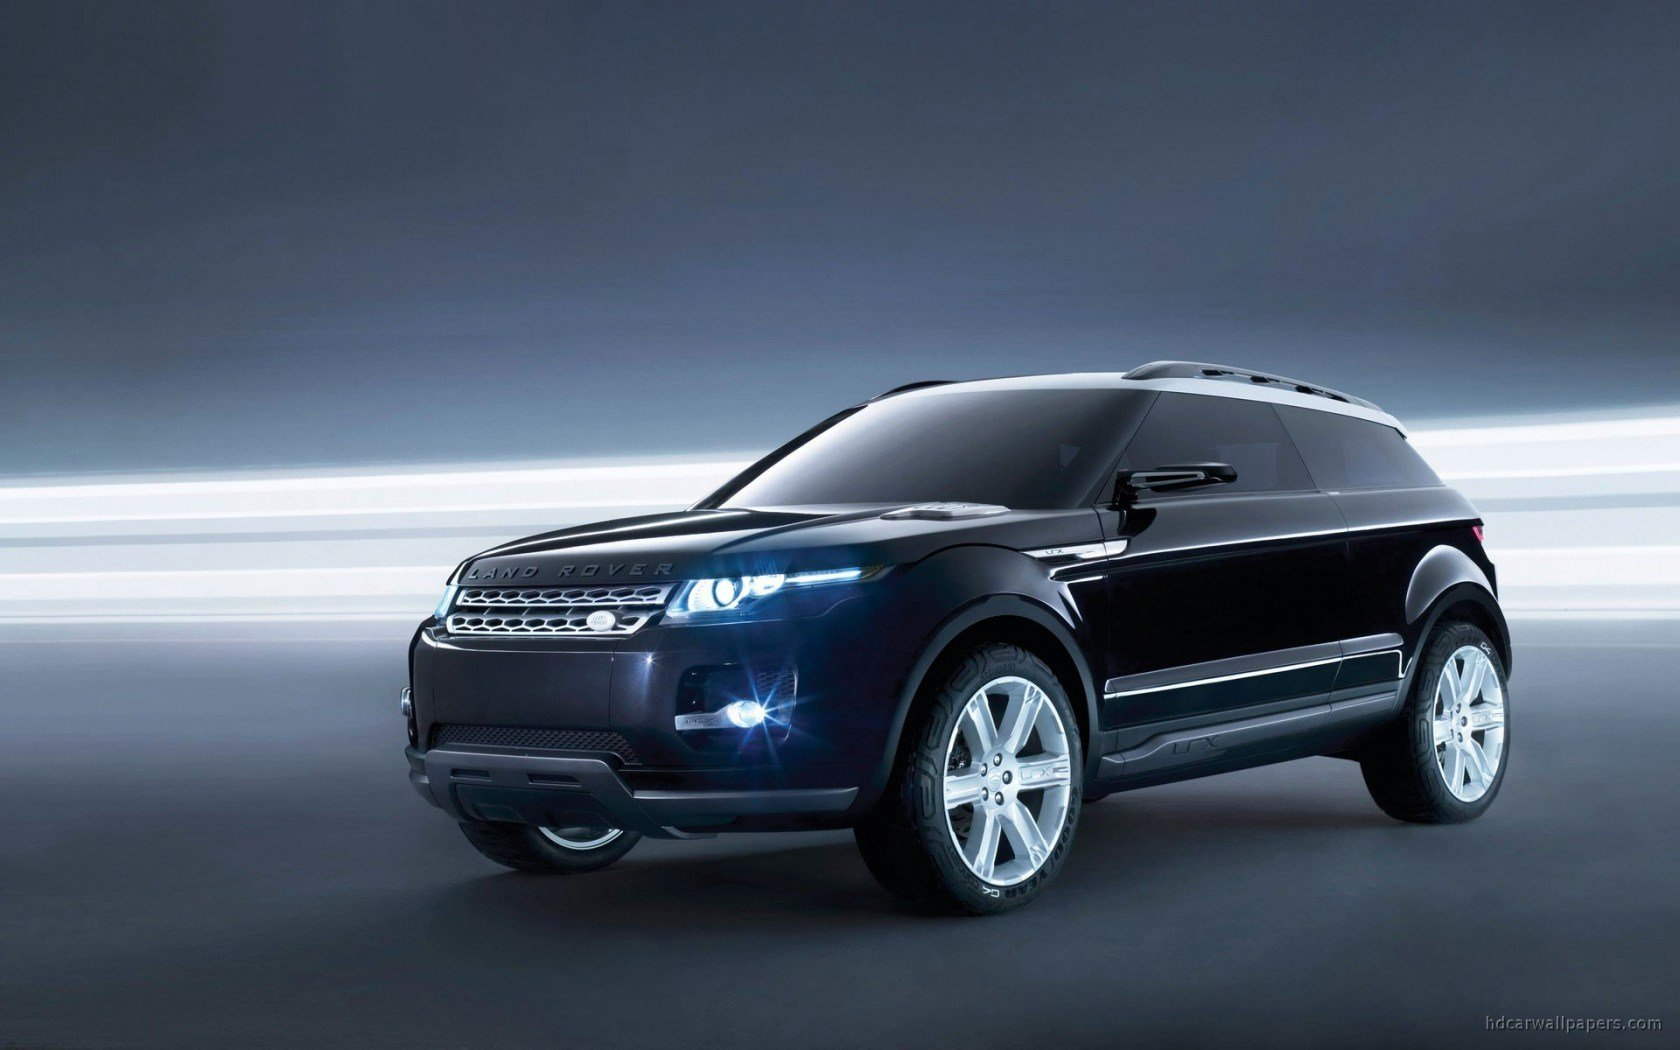 Latest Land Rover Lrx Concept Black 4 Wallpaper Hd Car Free Download